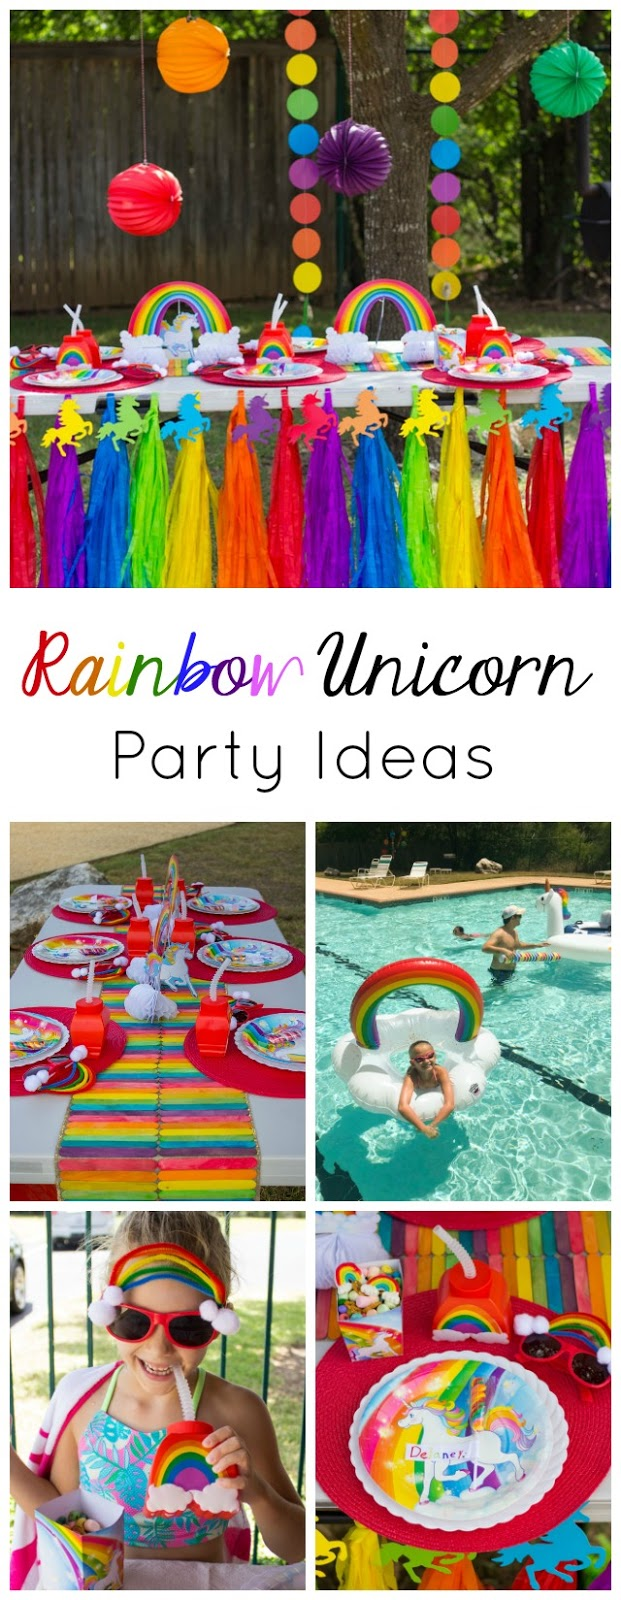 Lots of simple ideas for a rainbow unicorn birthday pool party! #unicornparty #rainbowparty #unicornbirthday